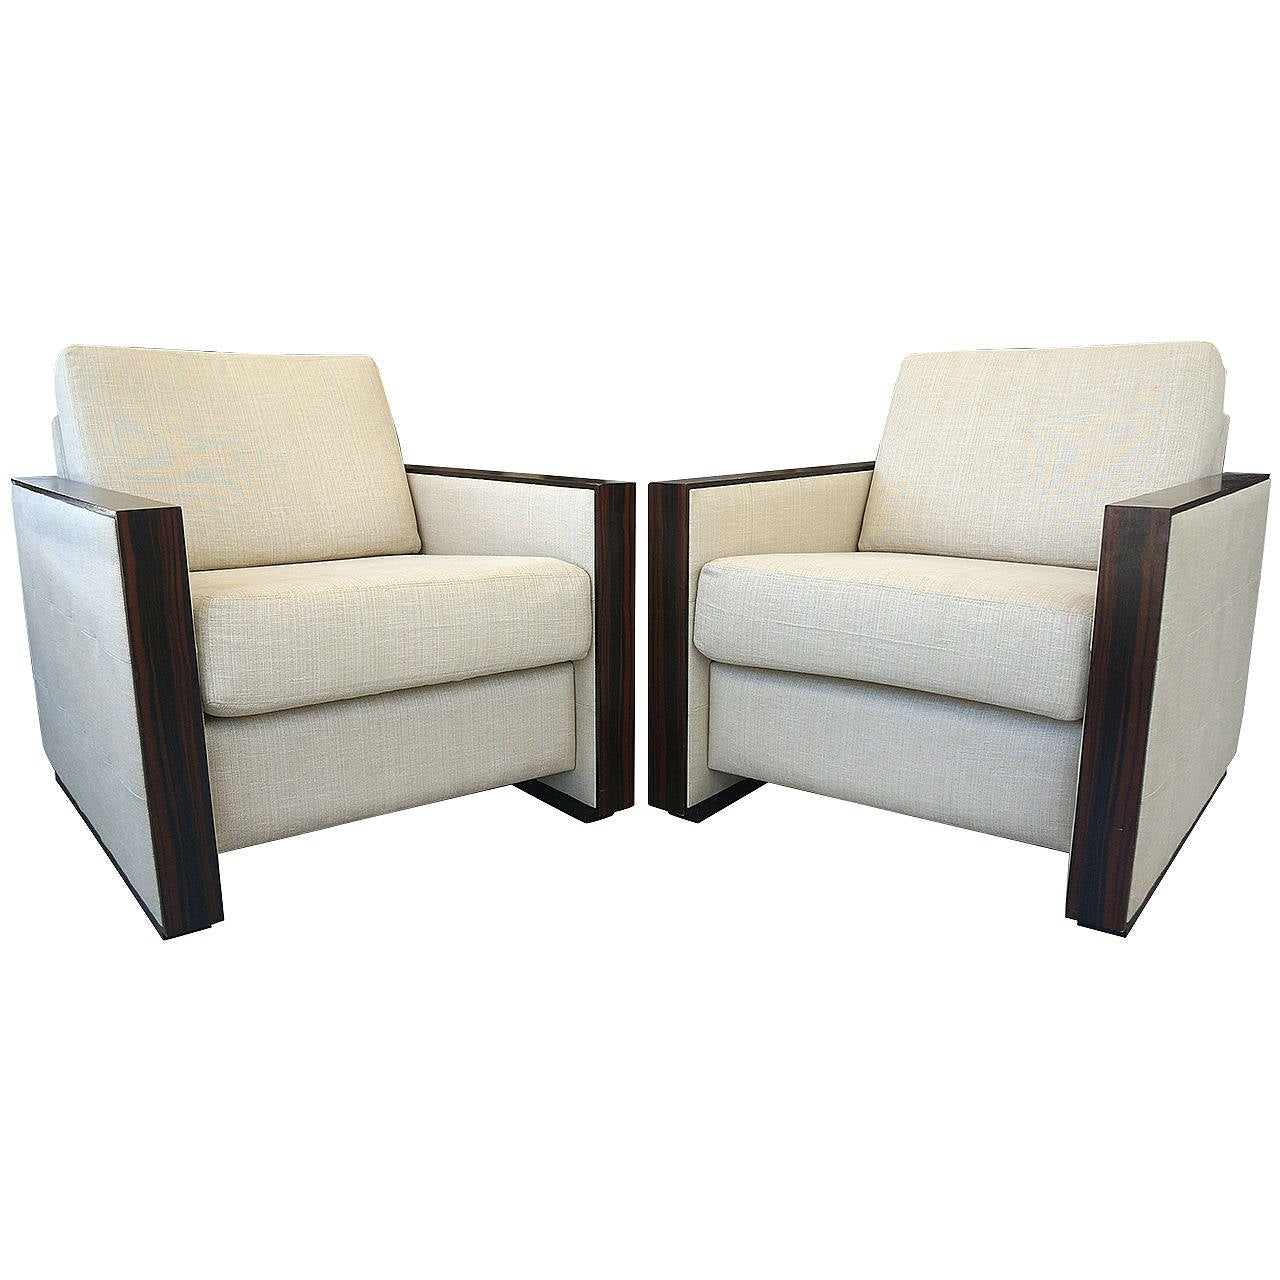 Art deco style chairs - Pair Of Jean Michel Frank Art Deco Style Club Chairs In Zebra Wood